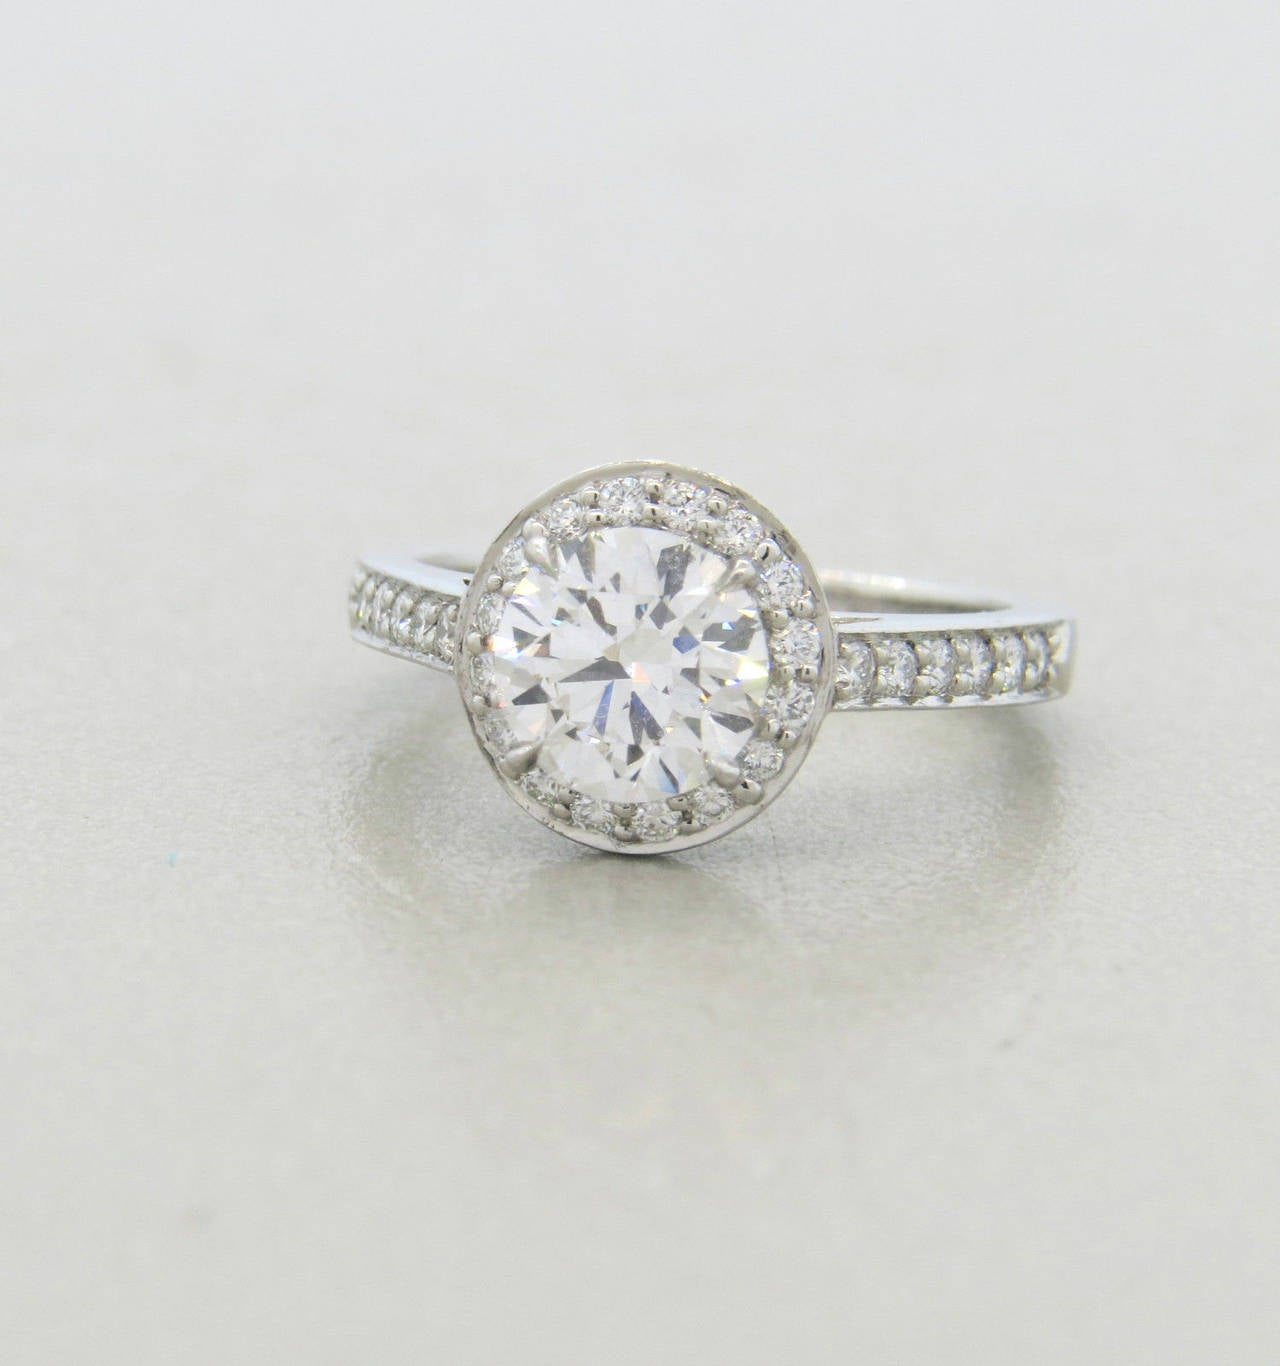 Tiffany & Co 0 99 Carat Diamond Platinum Embrace Engagement Ring image 2